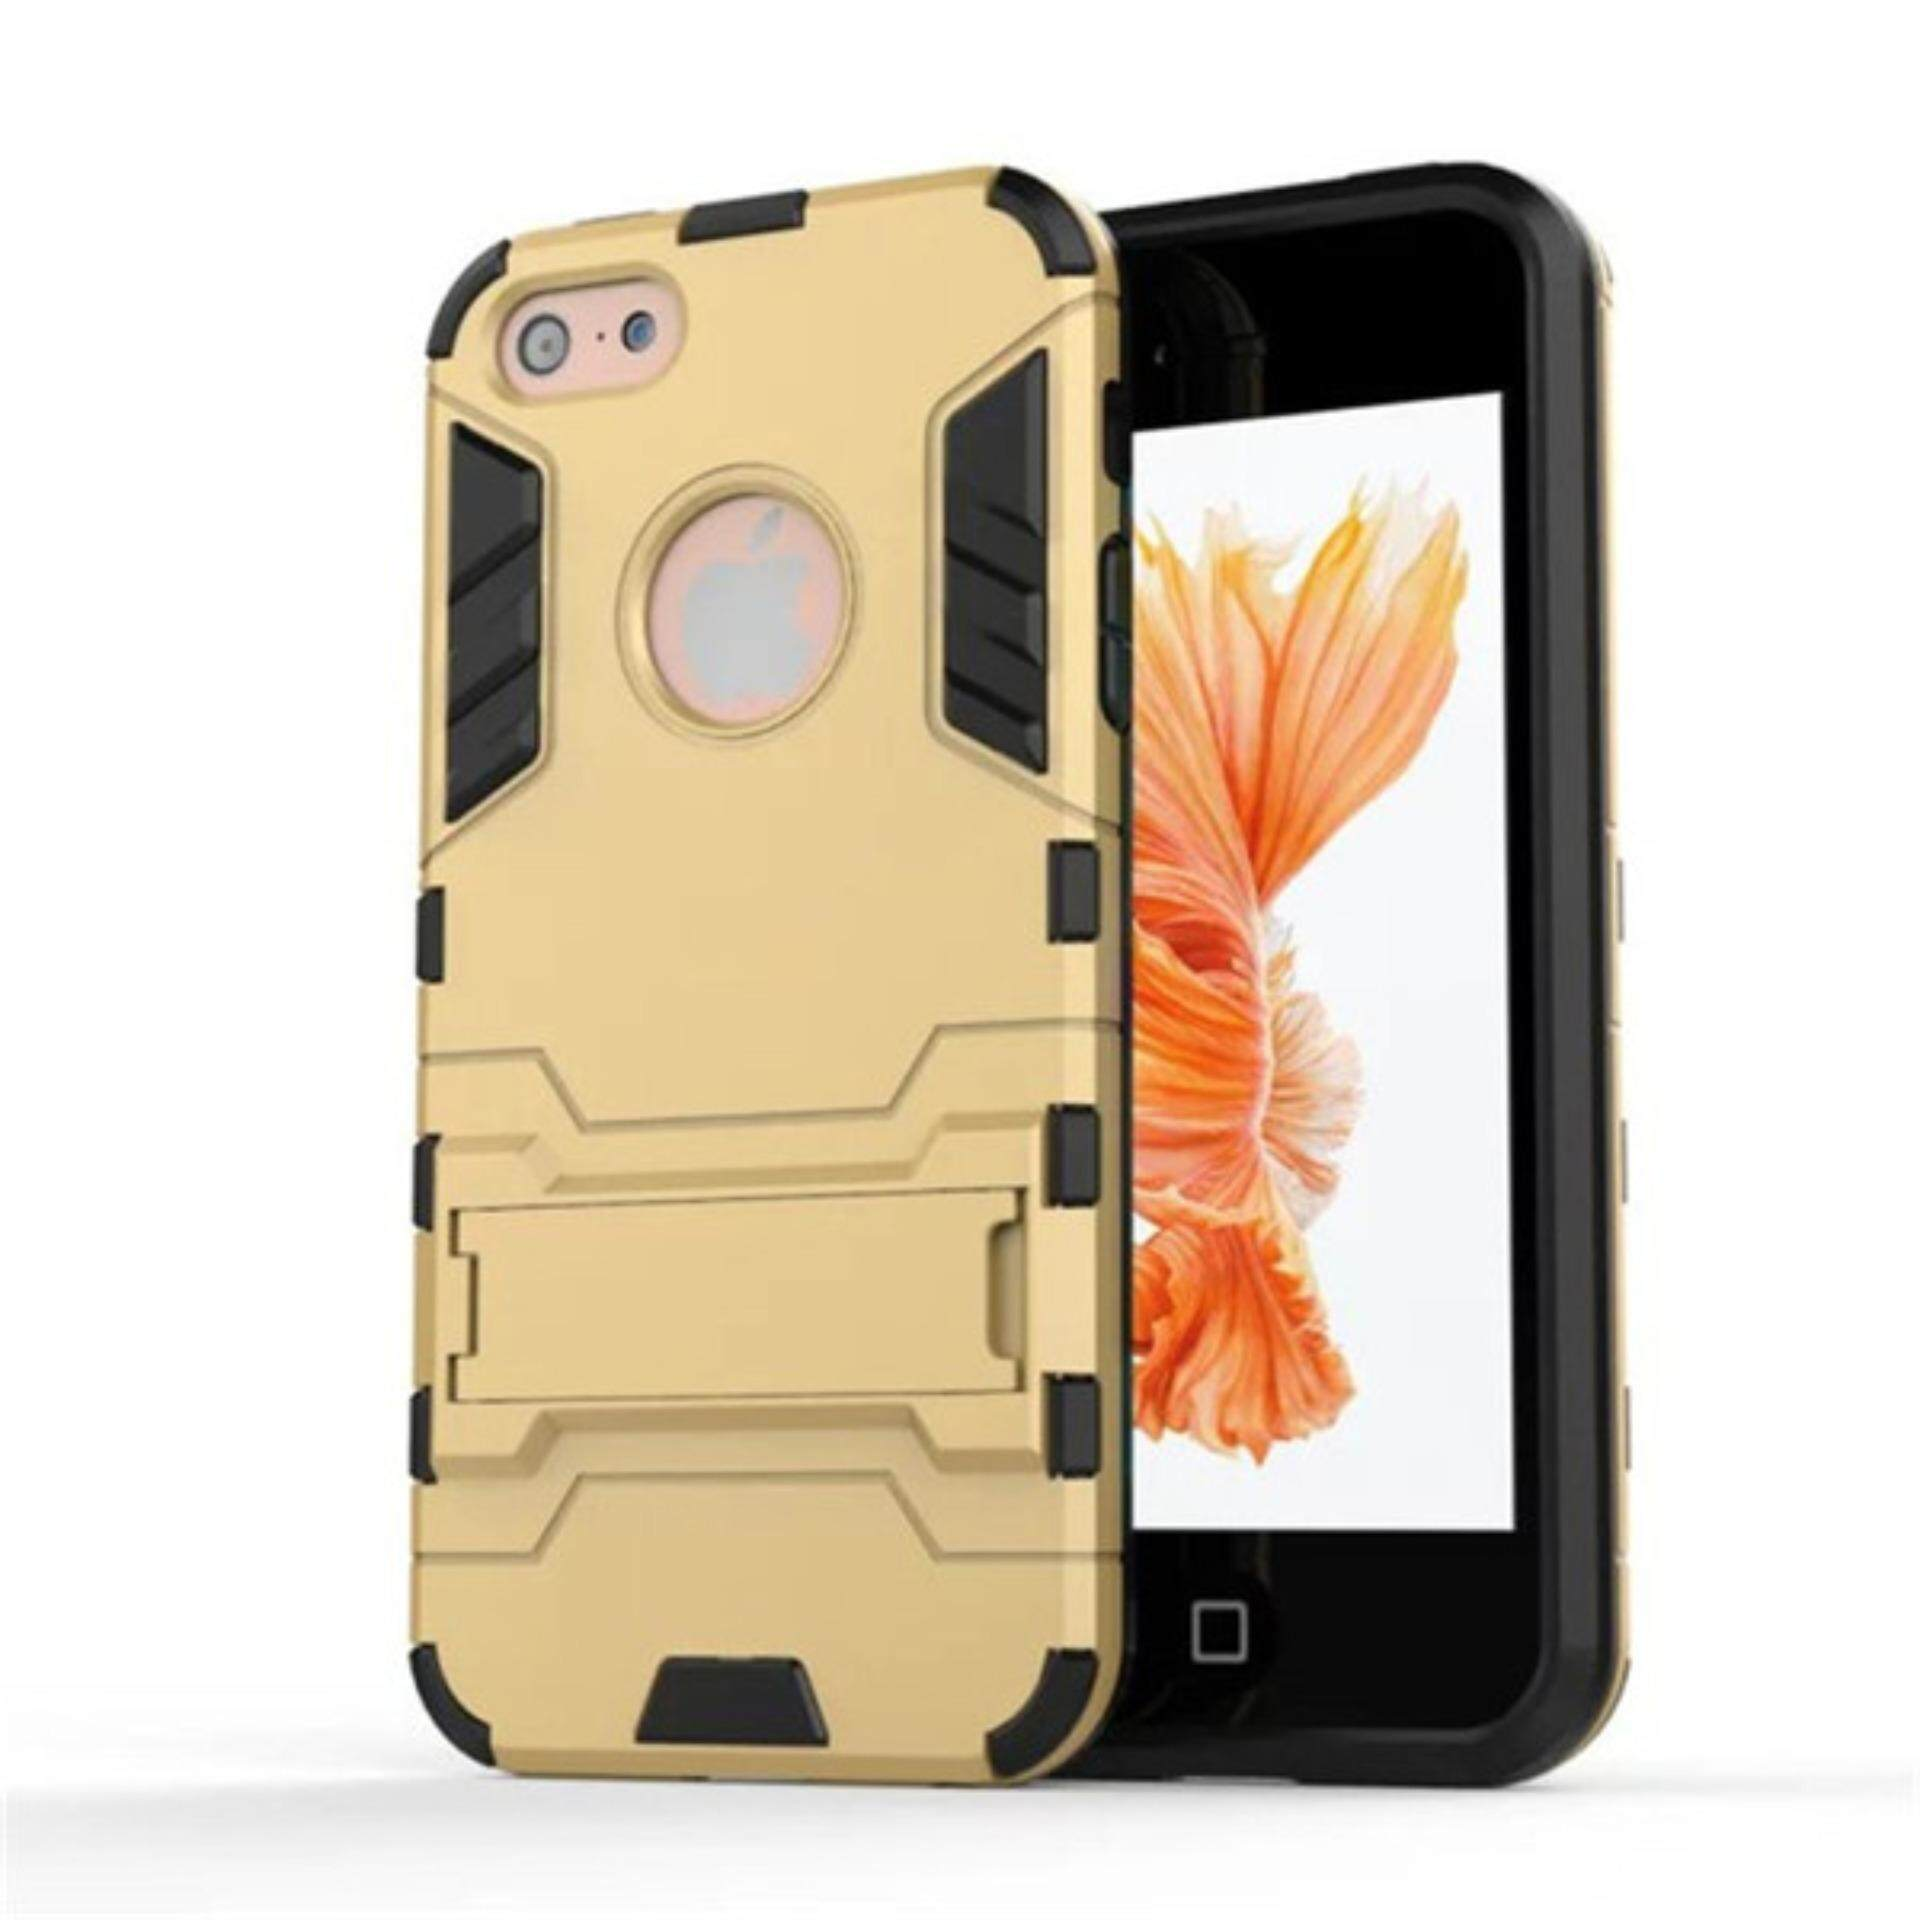 4s cases ebay -. Source · AKABEILA Sline Soft Silicone Mobile Phone Cases For ASUS